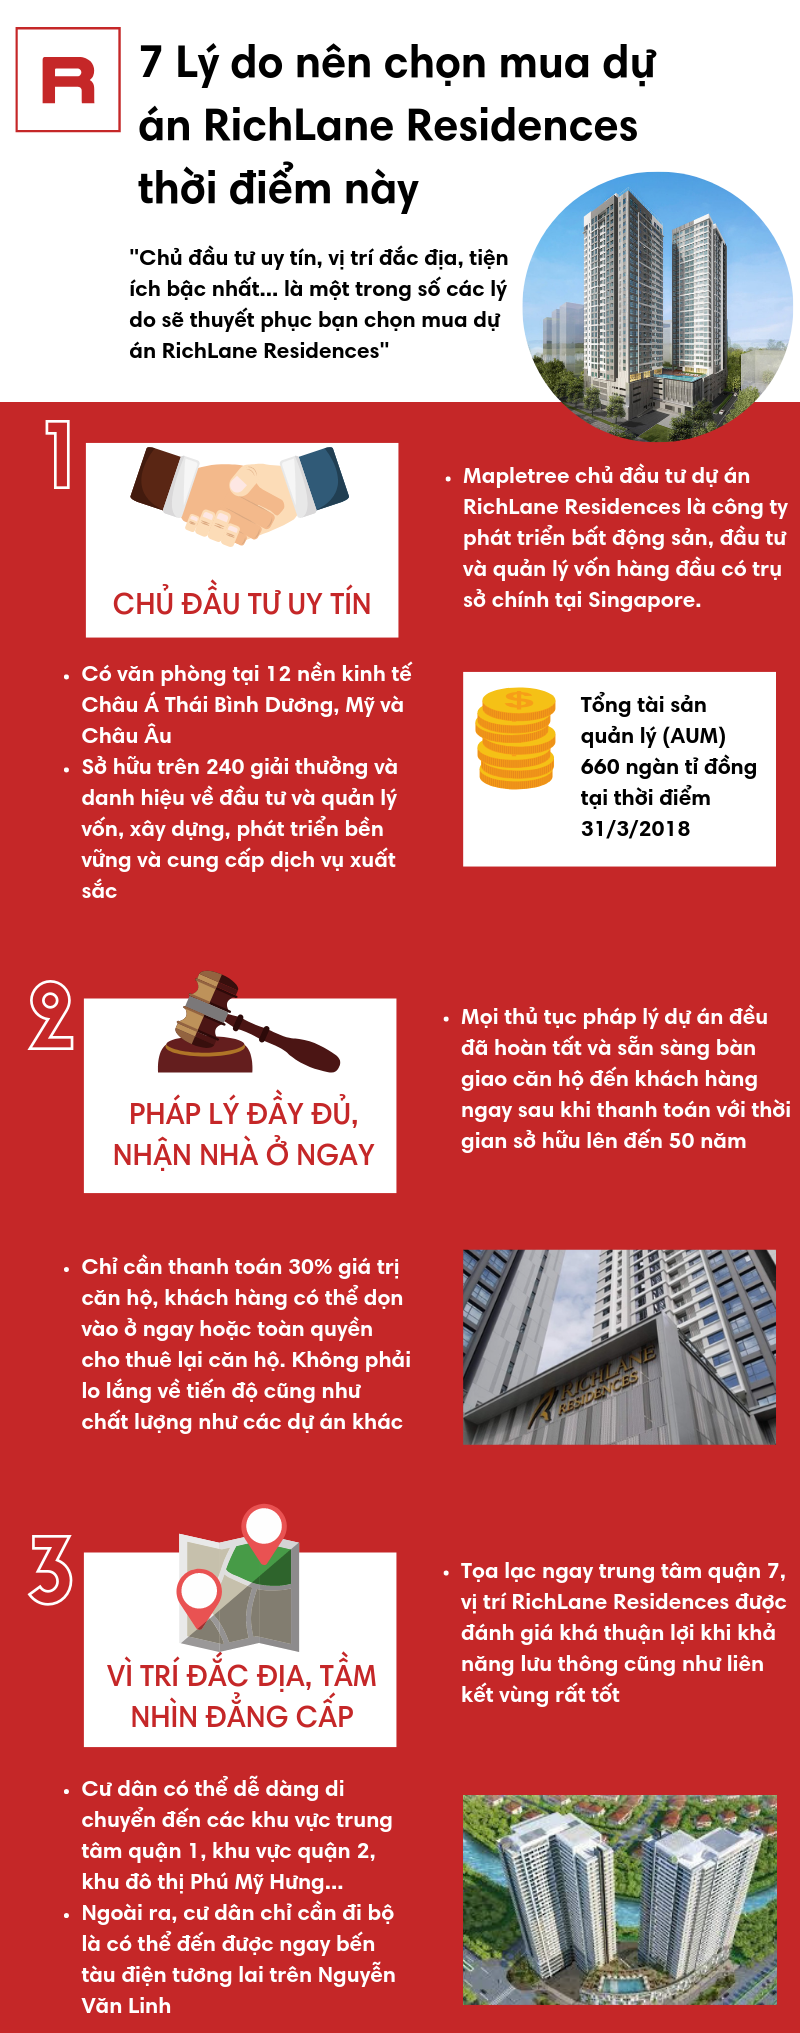 infographic-7-ly-do-ban-nen-chon-richlane-residences-lam-noi-an-cu-tai-thoi-diem-nay